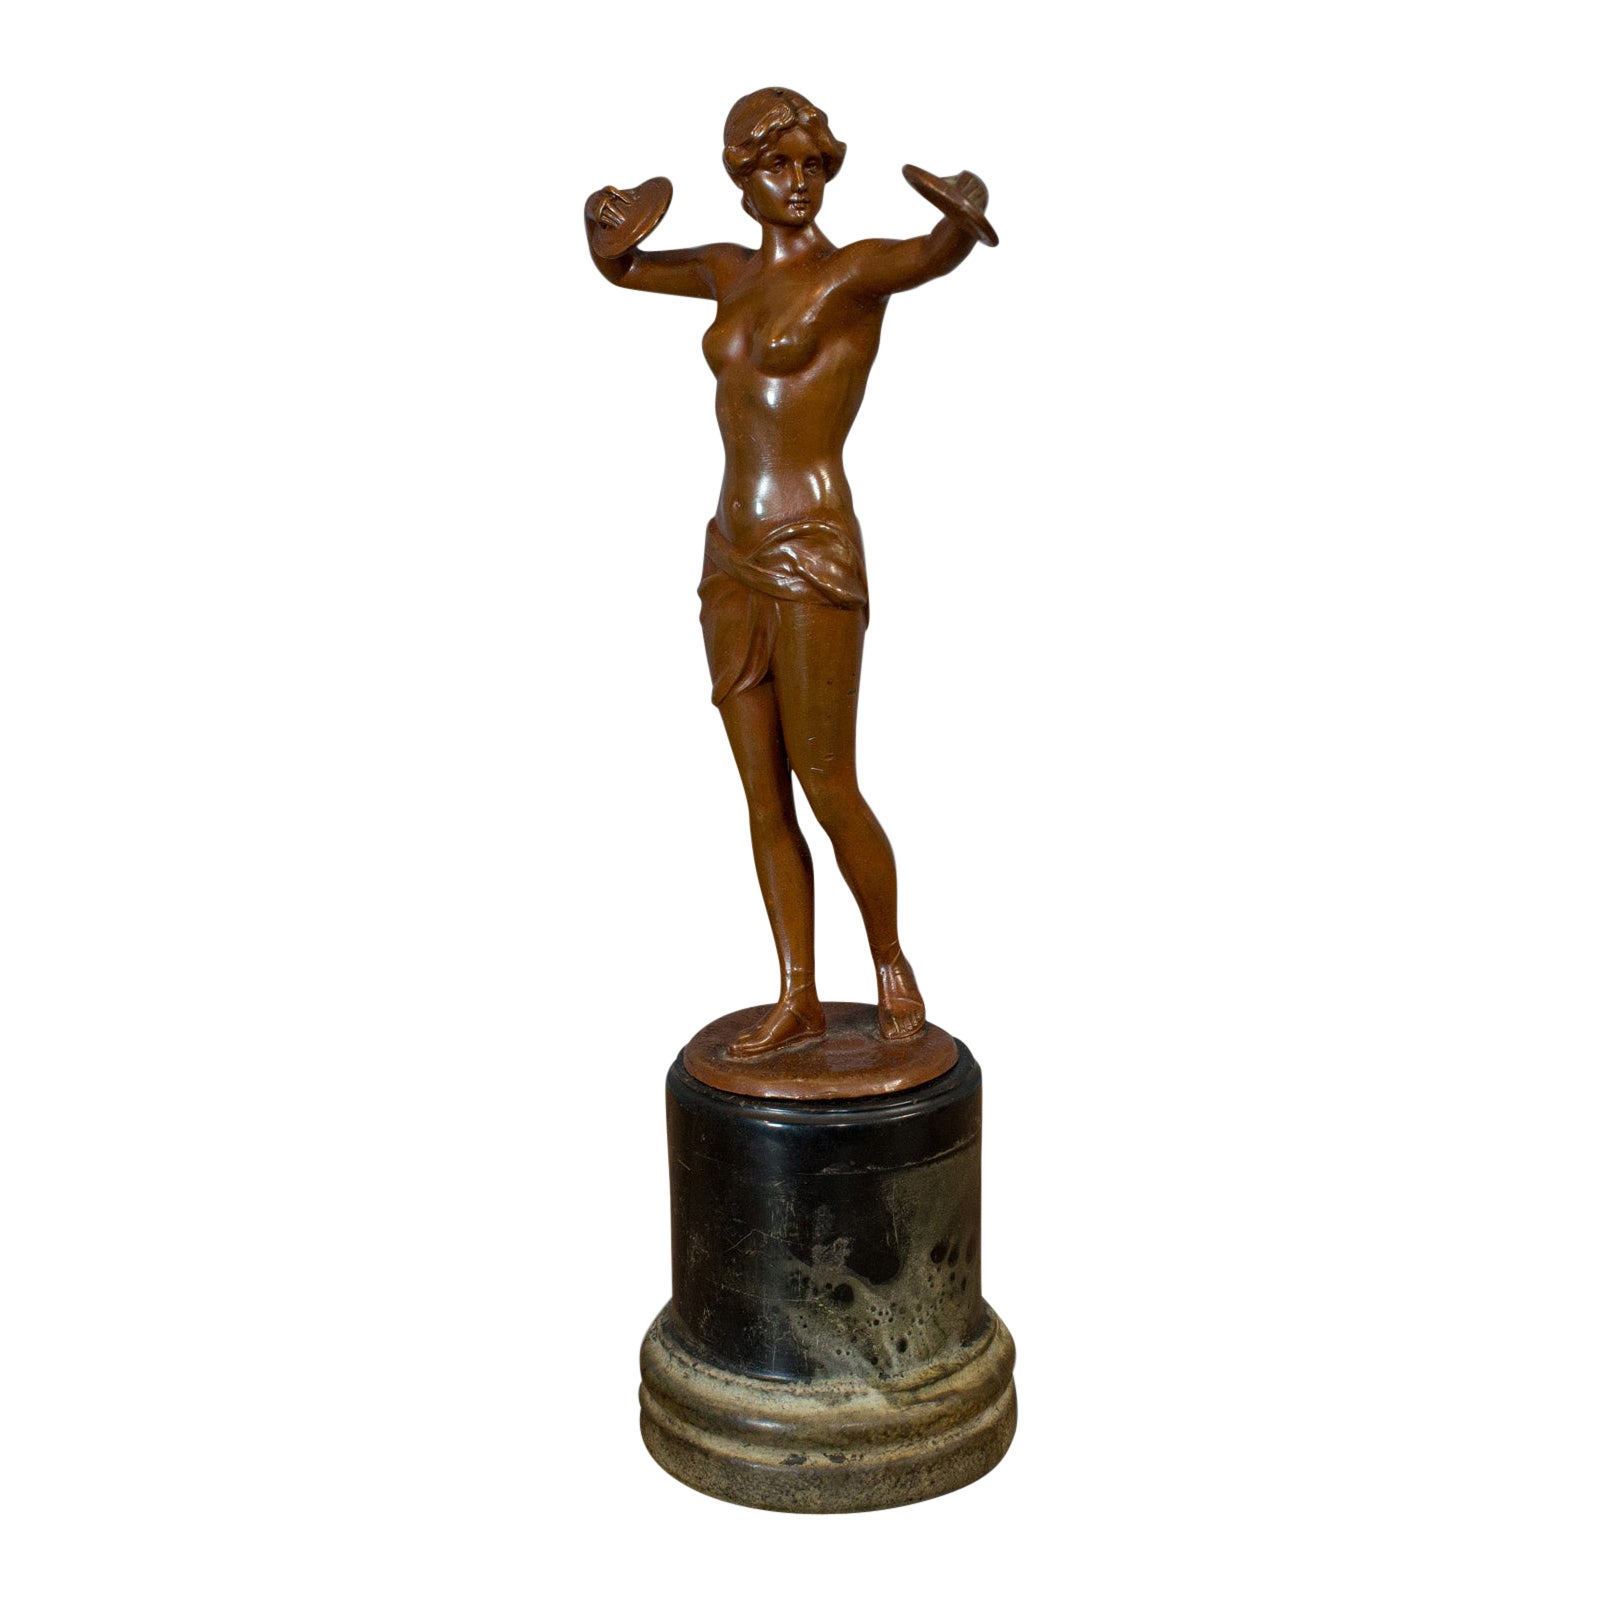 Vintage Female Figure, French, Bronze Spelter, Art Deco, Statuette, circa 1930